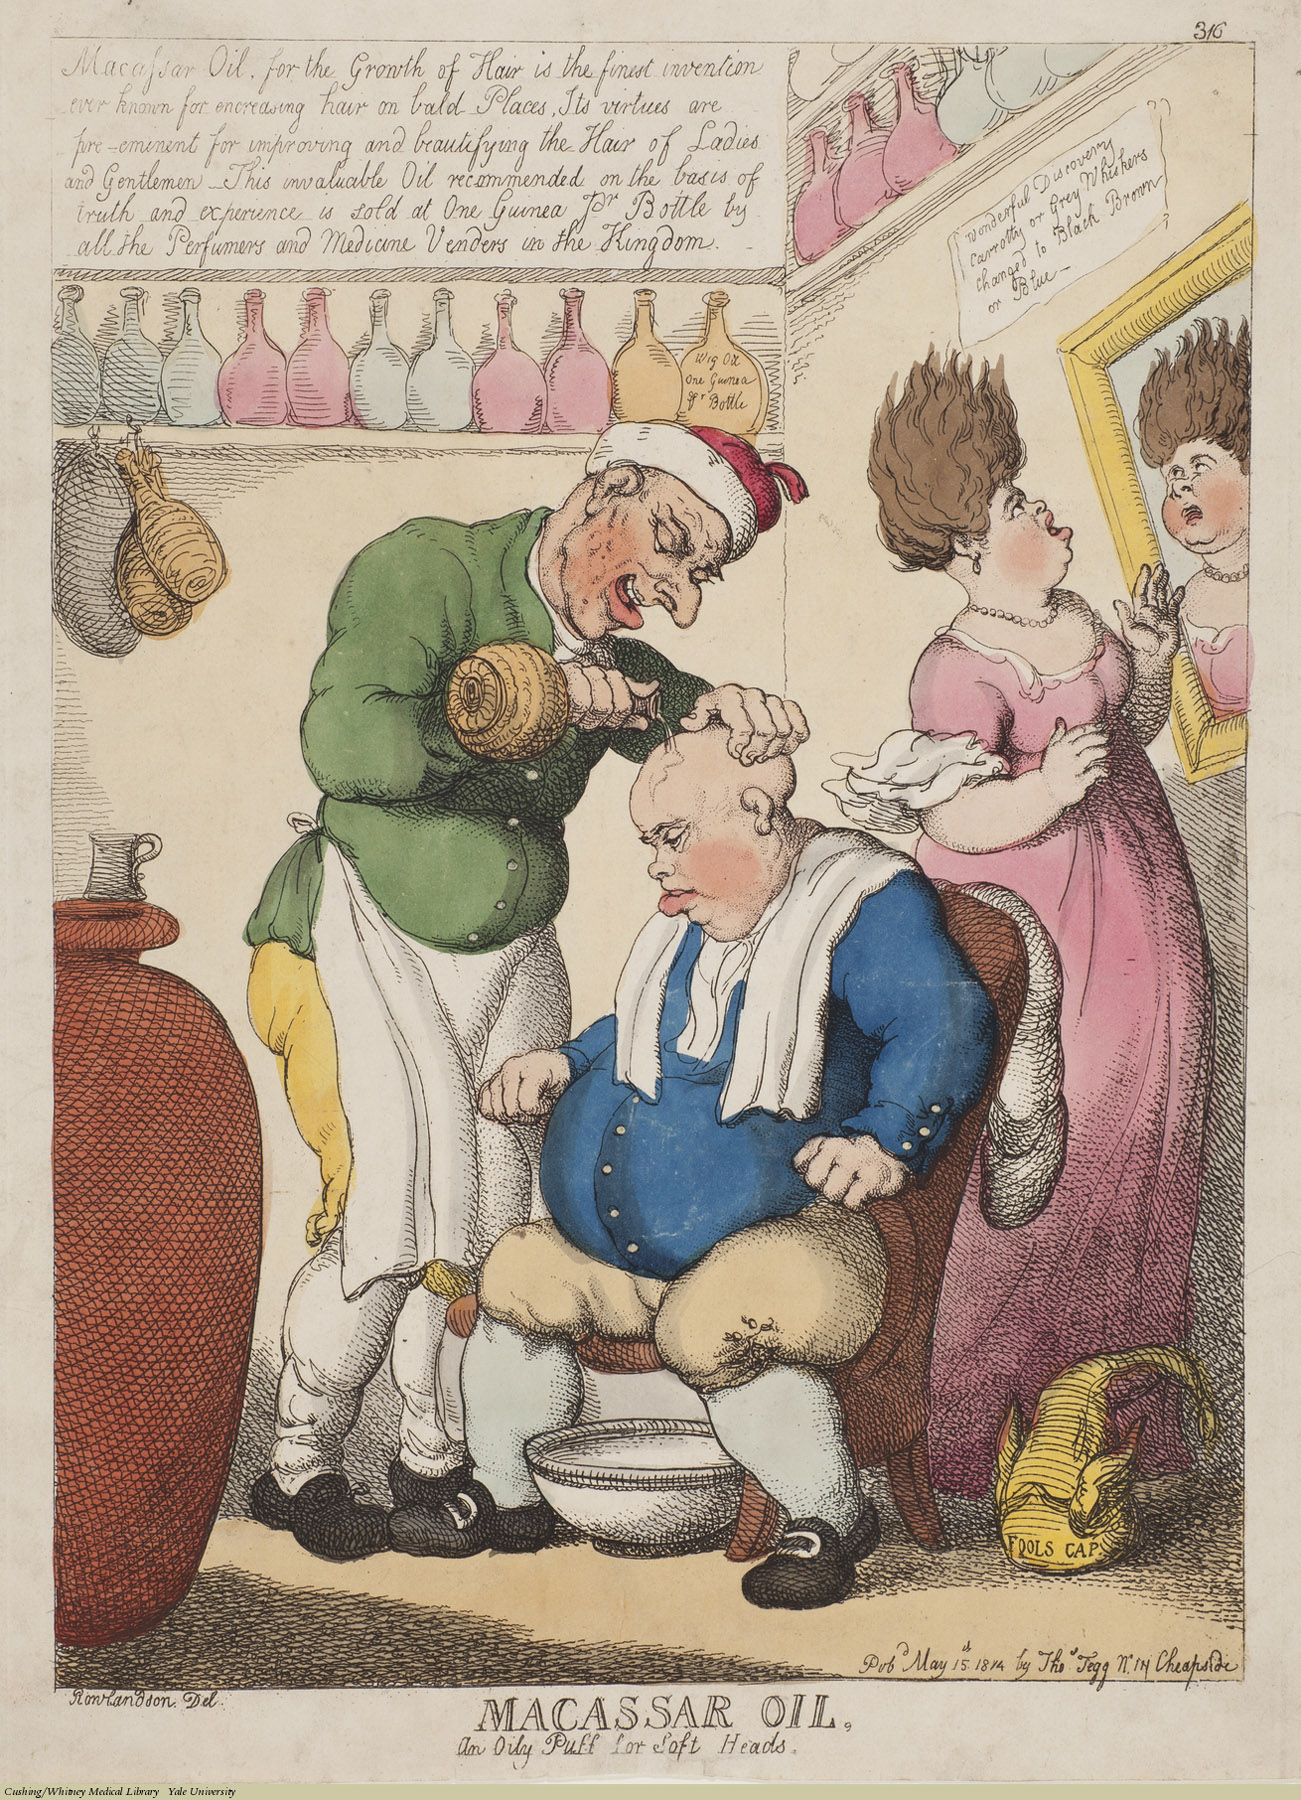 Macassar Oil, An oily Puff for Soft Heads. Thomas Rowlandson, Etching coloured, 1814. Subject: Macassar Oil, Rowland's Oil,Alexander Rowland,baldness,hair Tonic, Hair Oil,Proprietary Medicines.